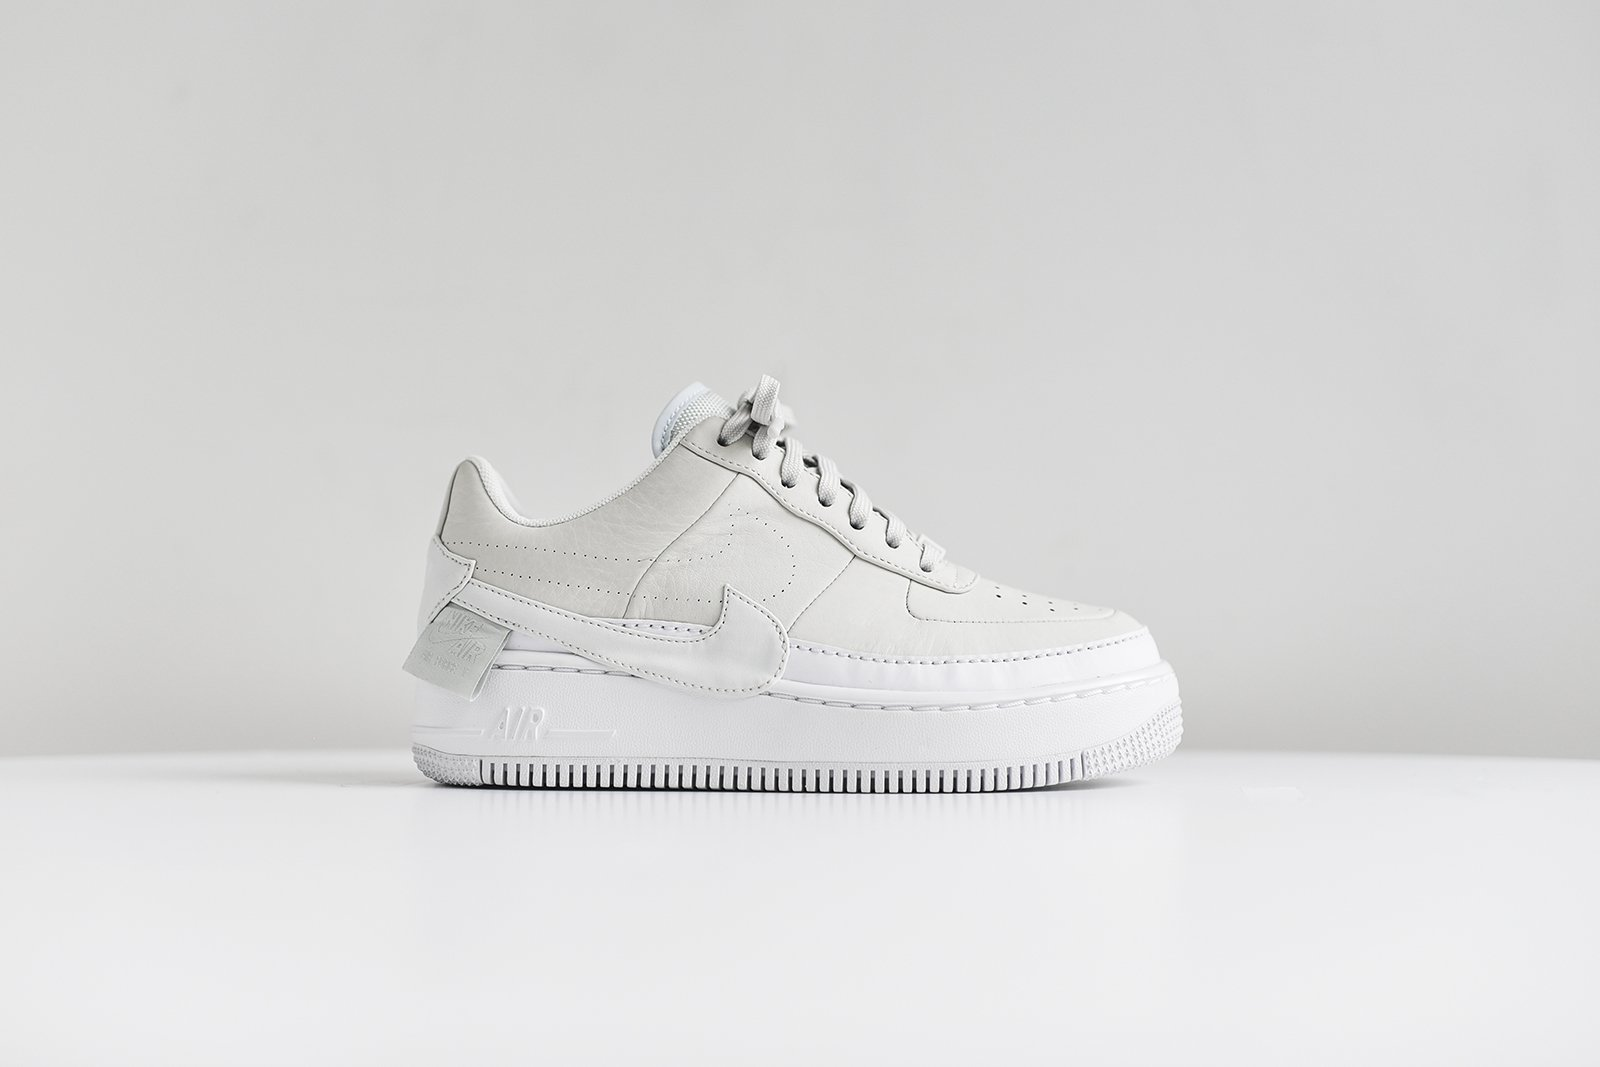 Nike NIKE WMNS AIR FORCE 1 JESTER XX OFF WHITE Size 10.5 - Low-Top Sneakers  for Sale - Grailed 4abee2403